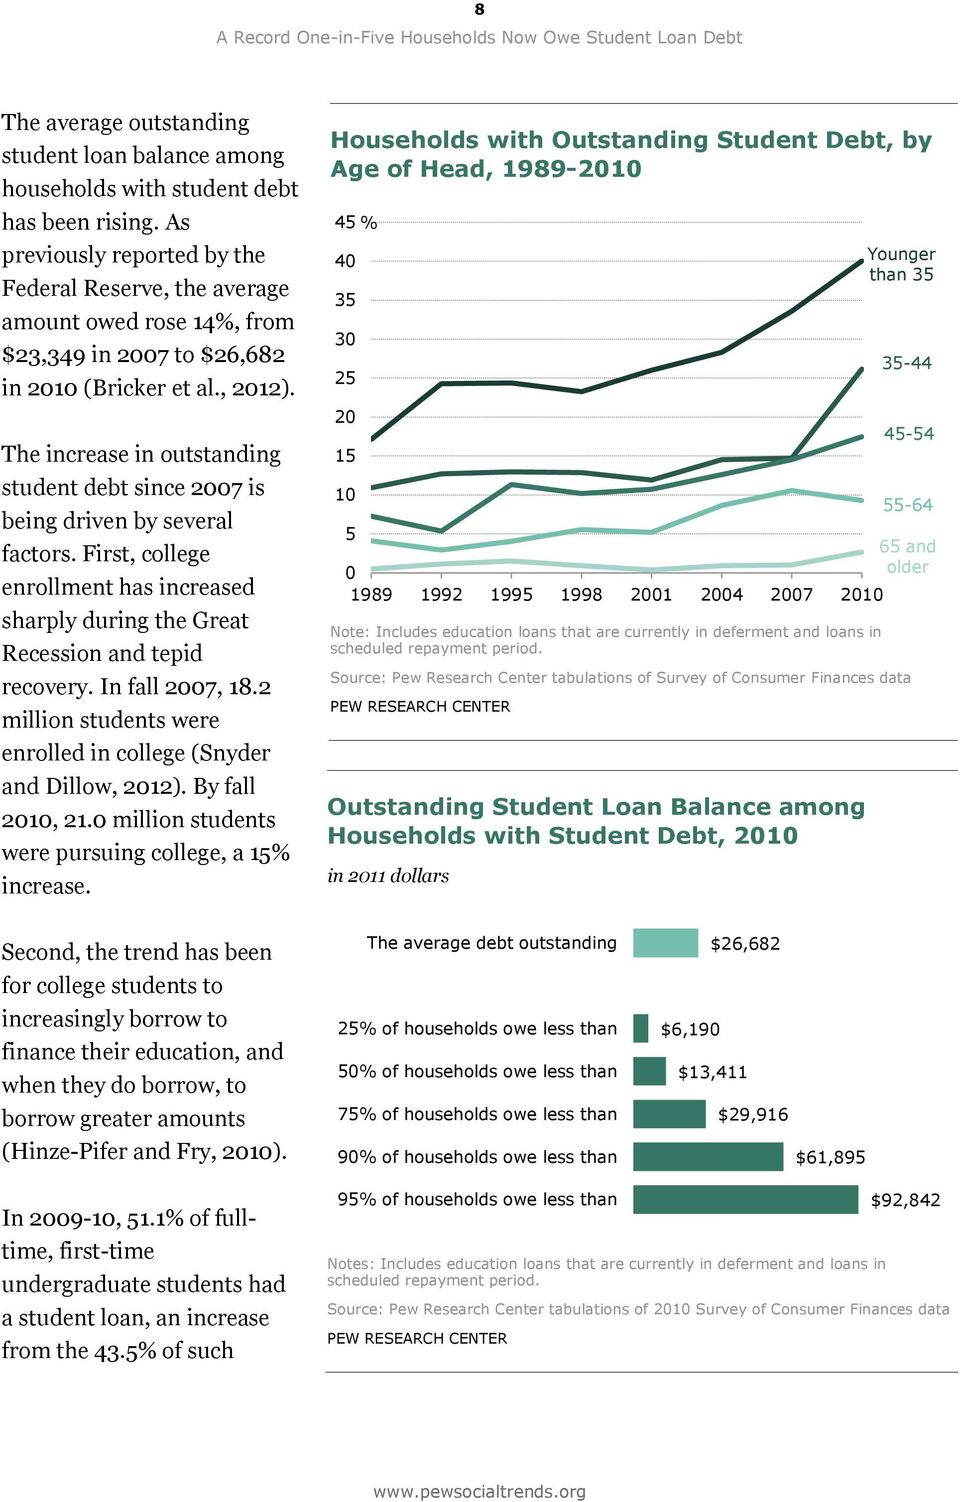 The increase in outstanding student debt since 2007 is being driven by several factors. First, college enrollment has increased sharply during the Great Recession and tepid recovery. In fall 2007, 18.